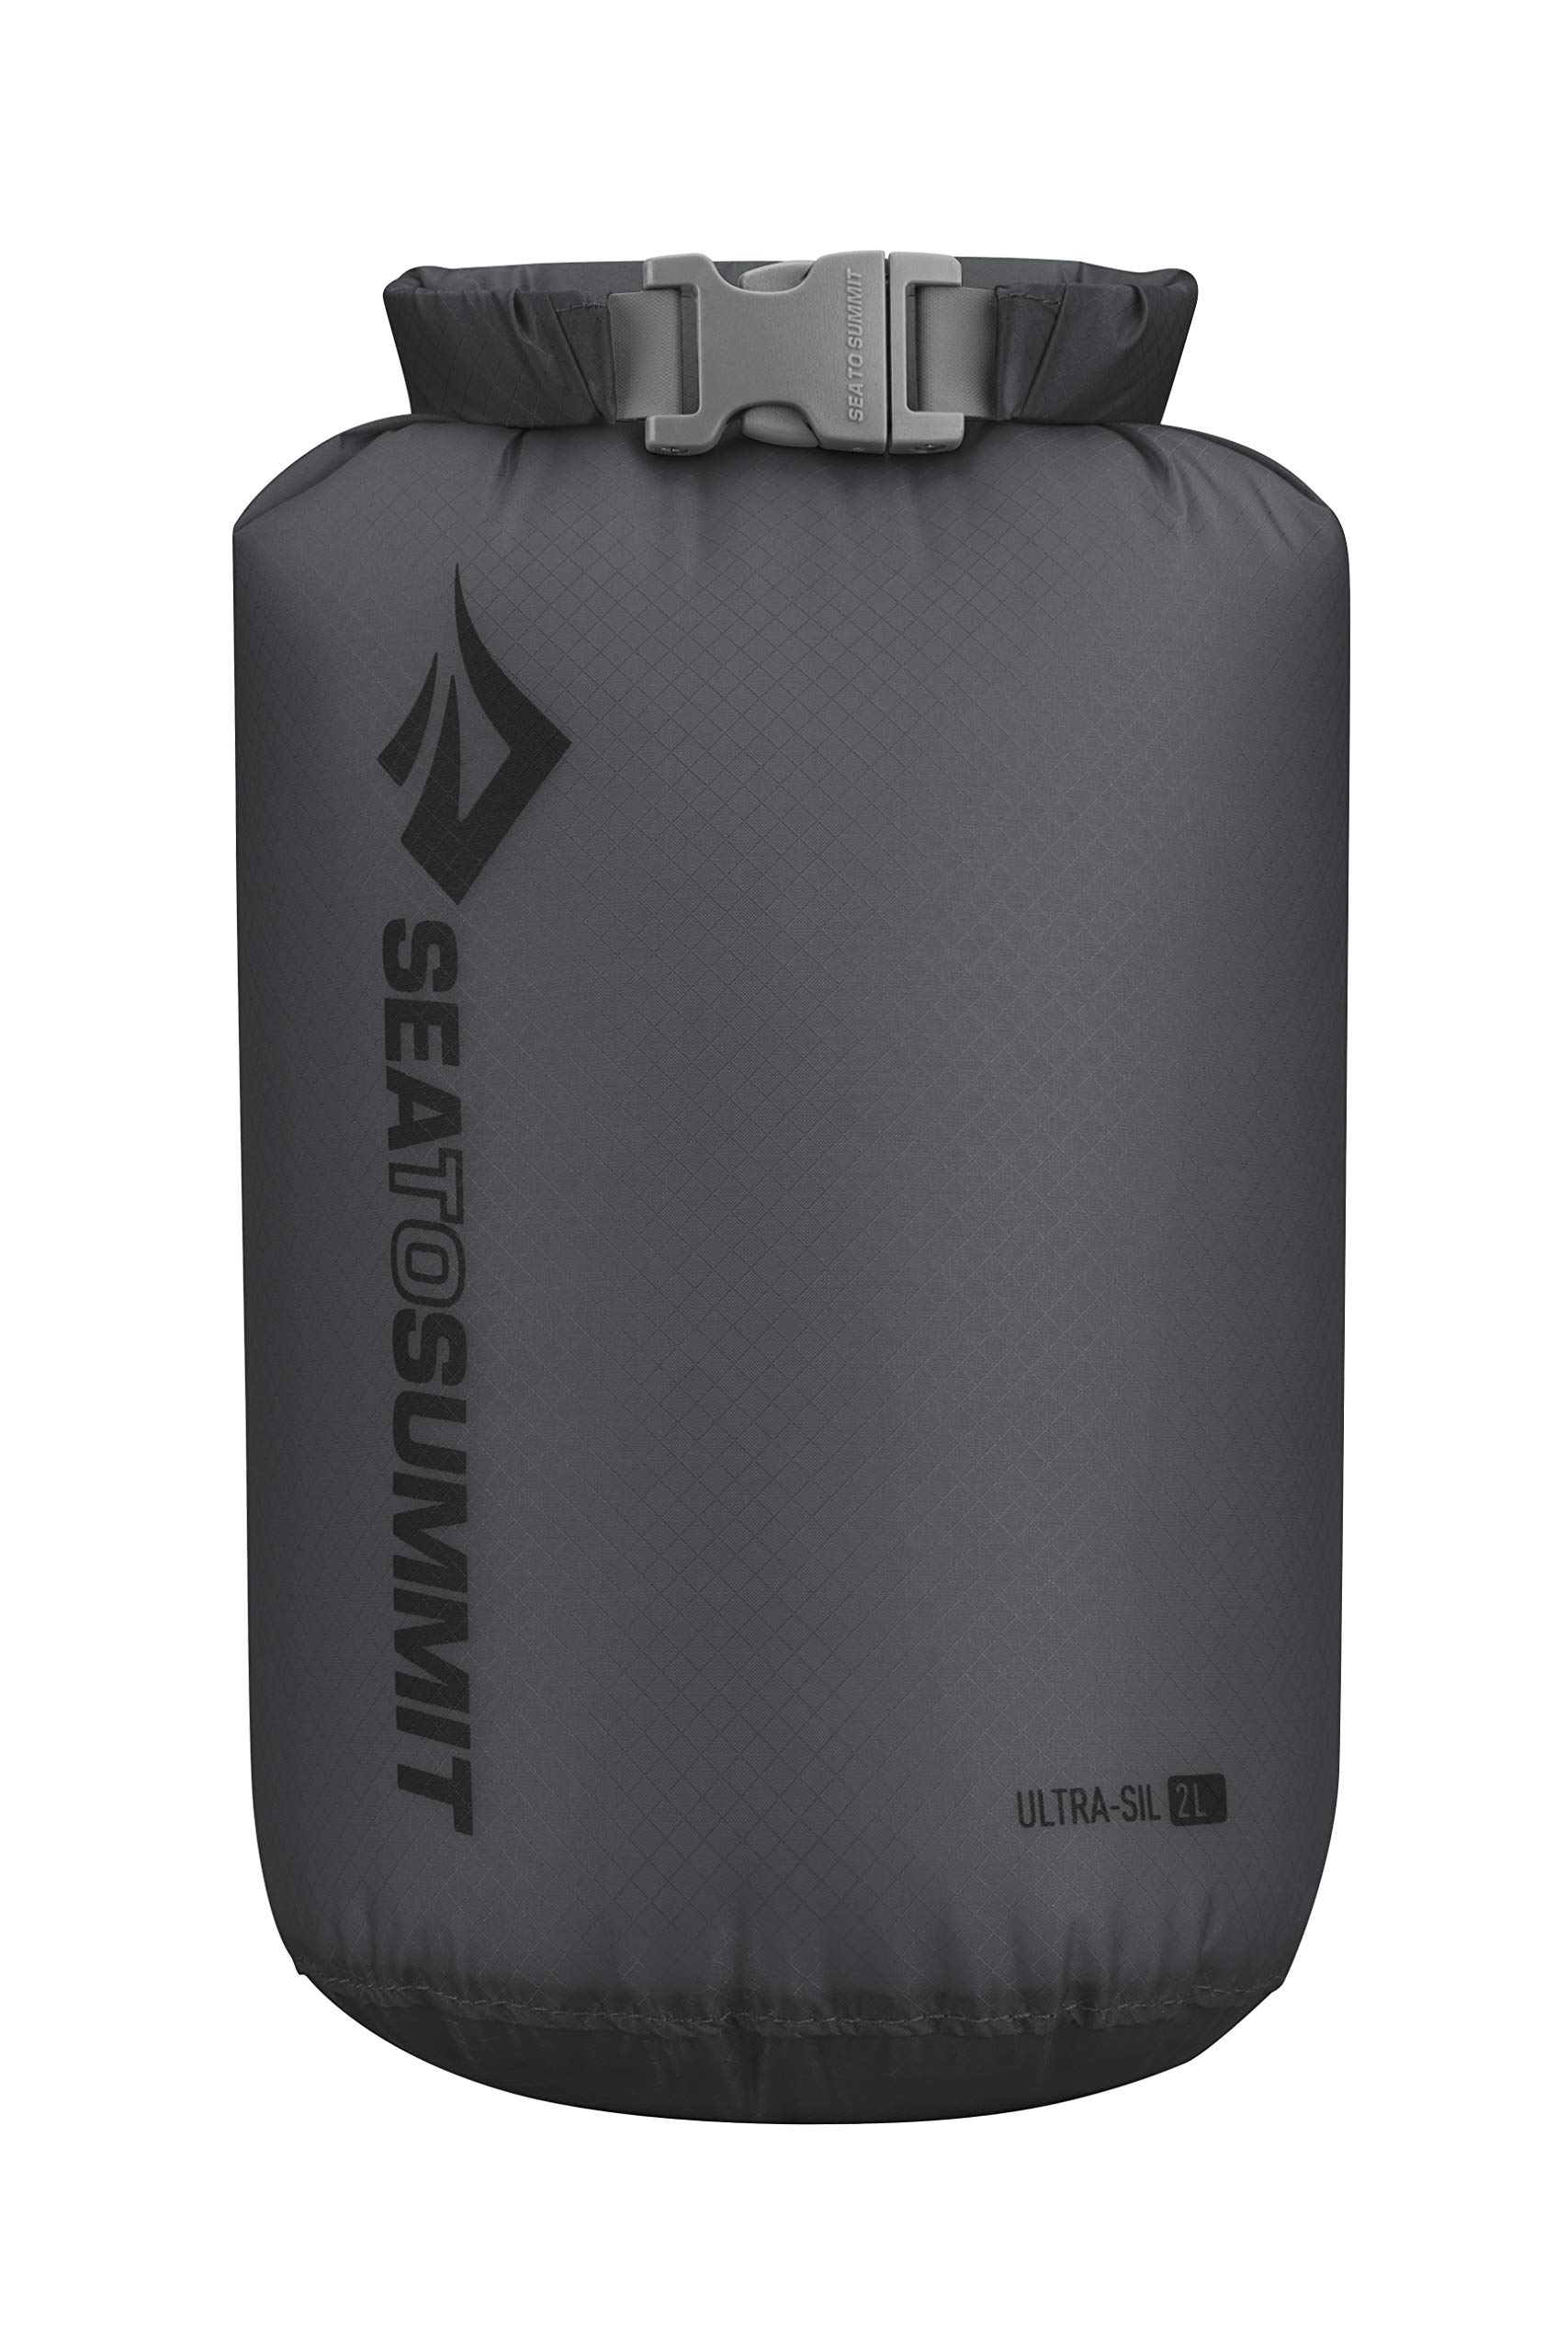 Sea to Summit Ultra-SIL Dry Sack, Grey, 2 Liter by Sea to Summit